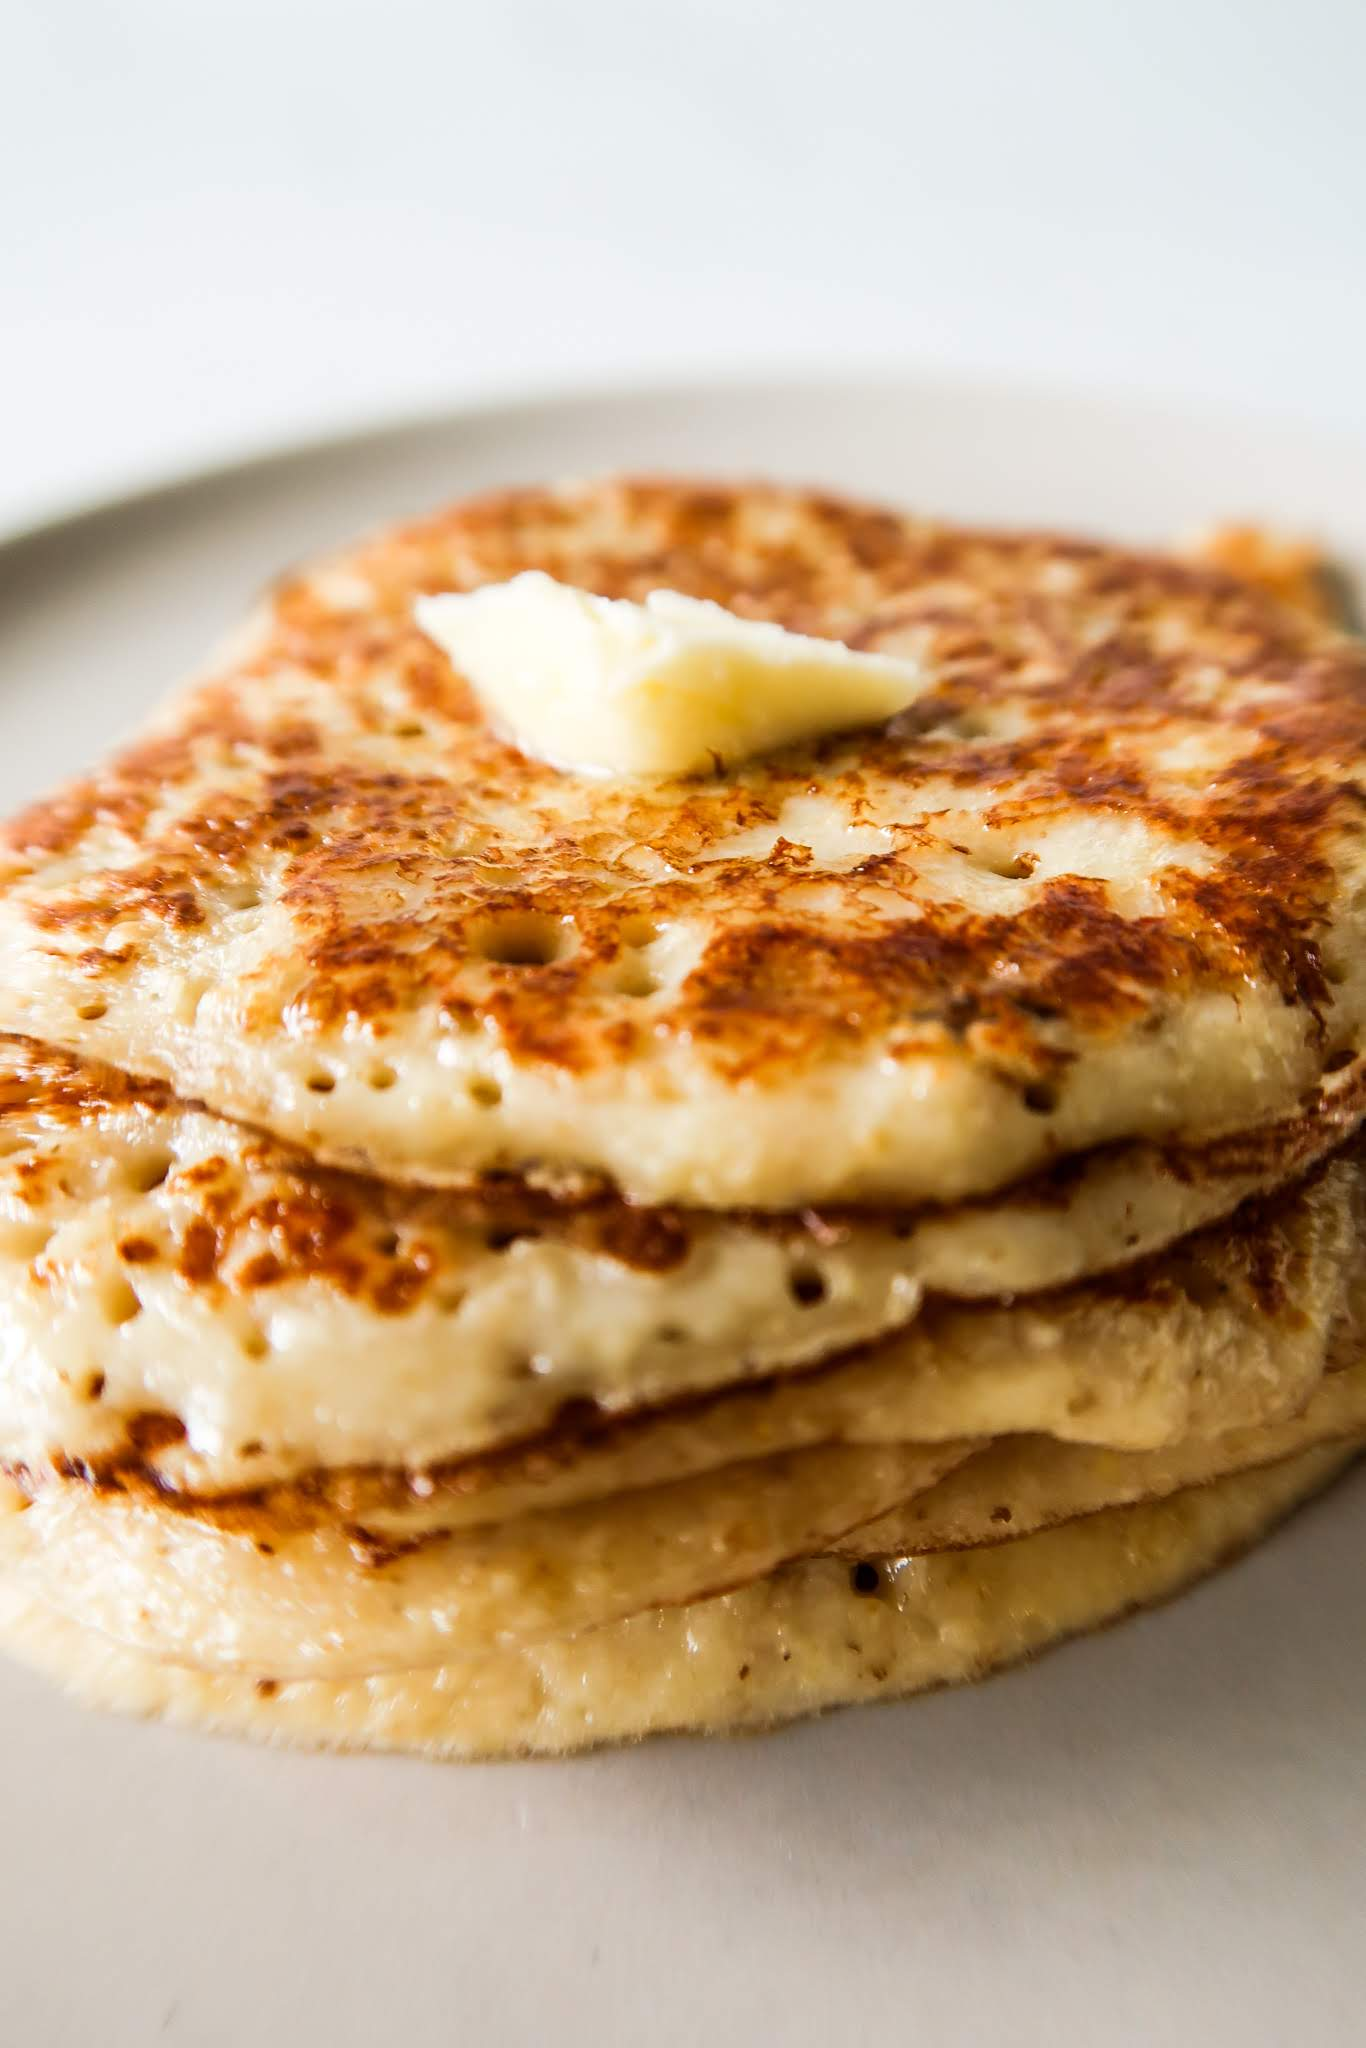 The best oatmeal pancakes you'll ever eat! These healthy pancakes are easy, delicious, ready in 10 minutes and perfect for a healthy breakfast. You need a blender or a hand blender and some basic, easy to find ingredients. Easy Oatmeal Pancake Recipe by Homemade Mastery.com